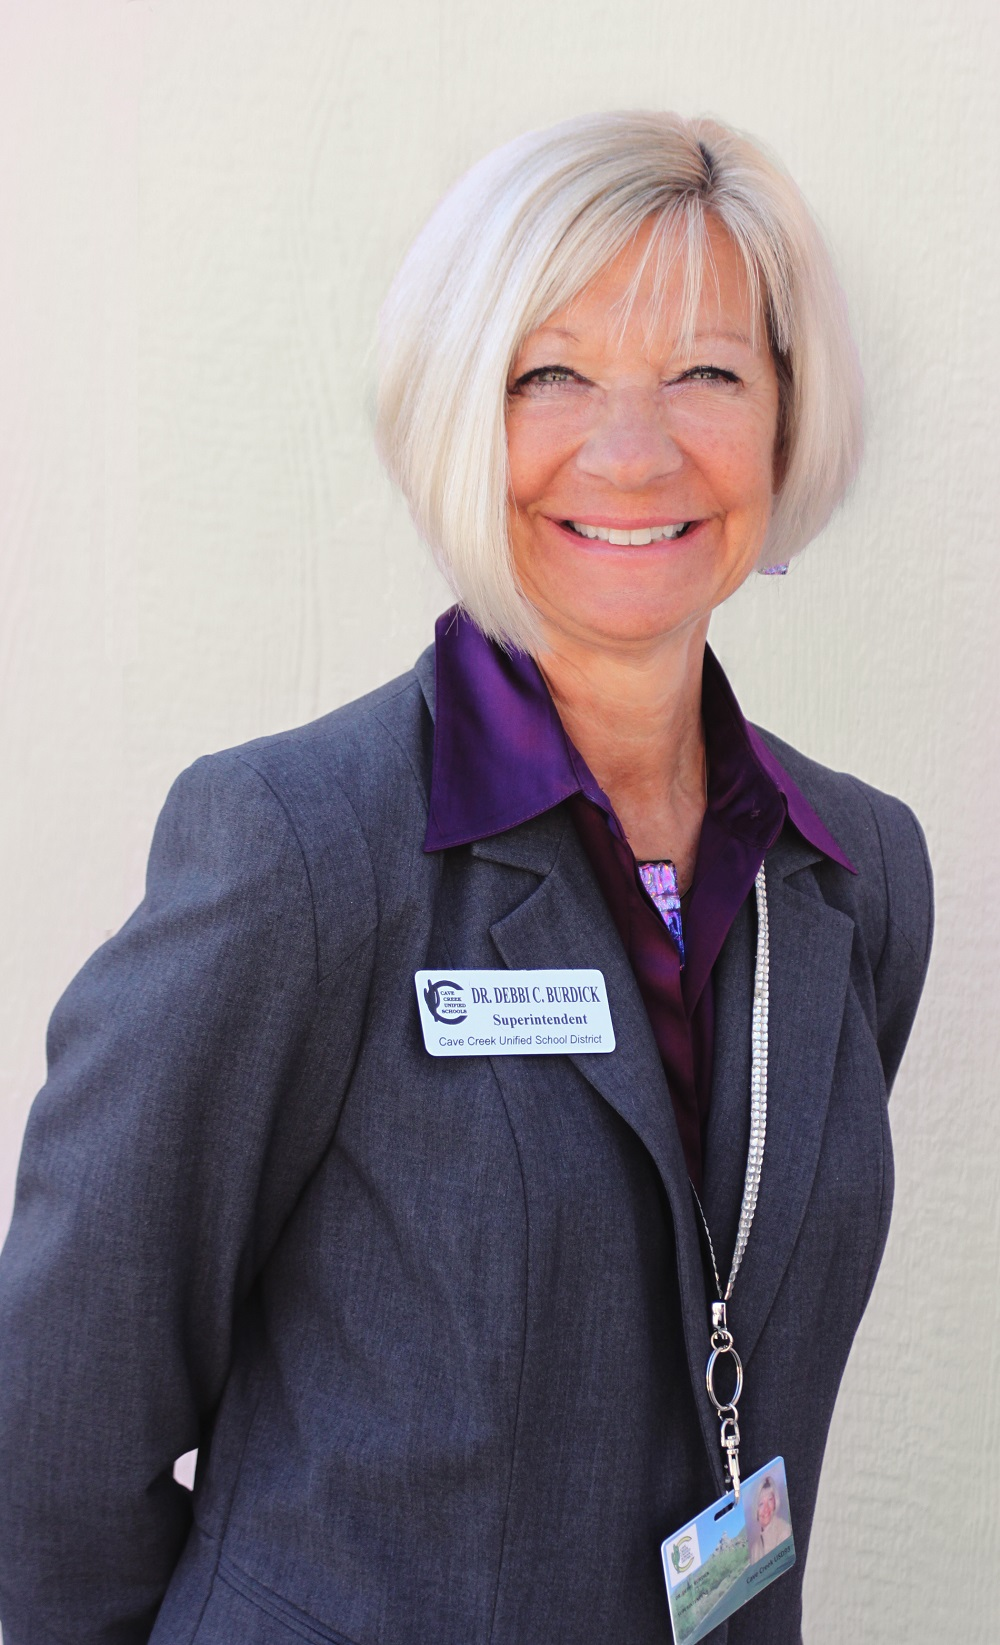 Dr. Debbi Burdick named Arizona Superintendent of the Year DrDebbiBurdickFull